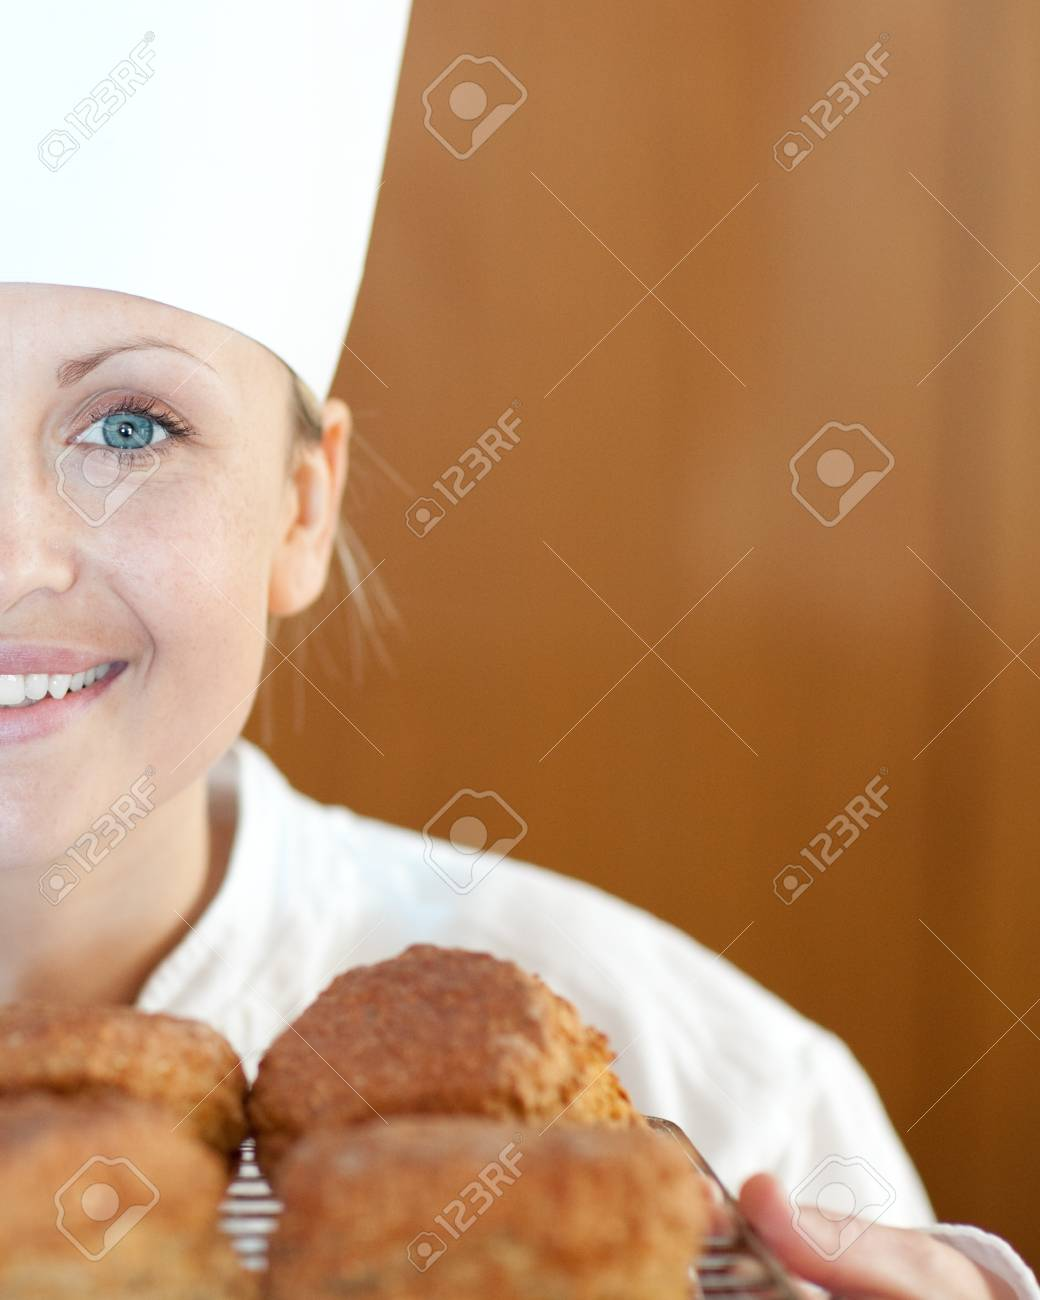 Close-up of a smiling female chef baking scones Stock Photo - 10232414